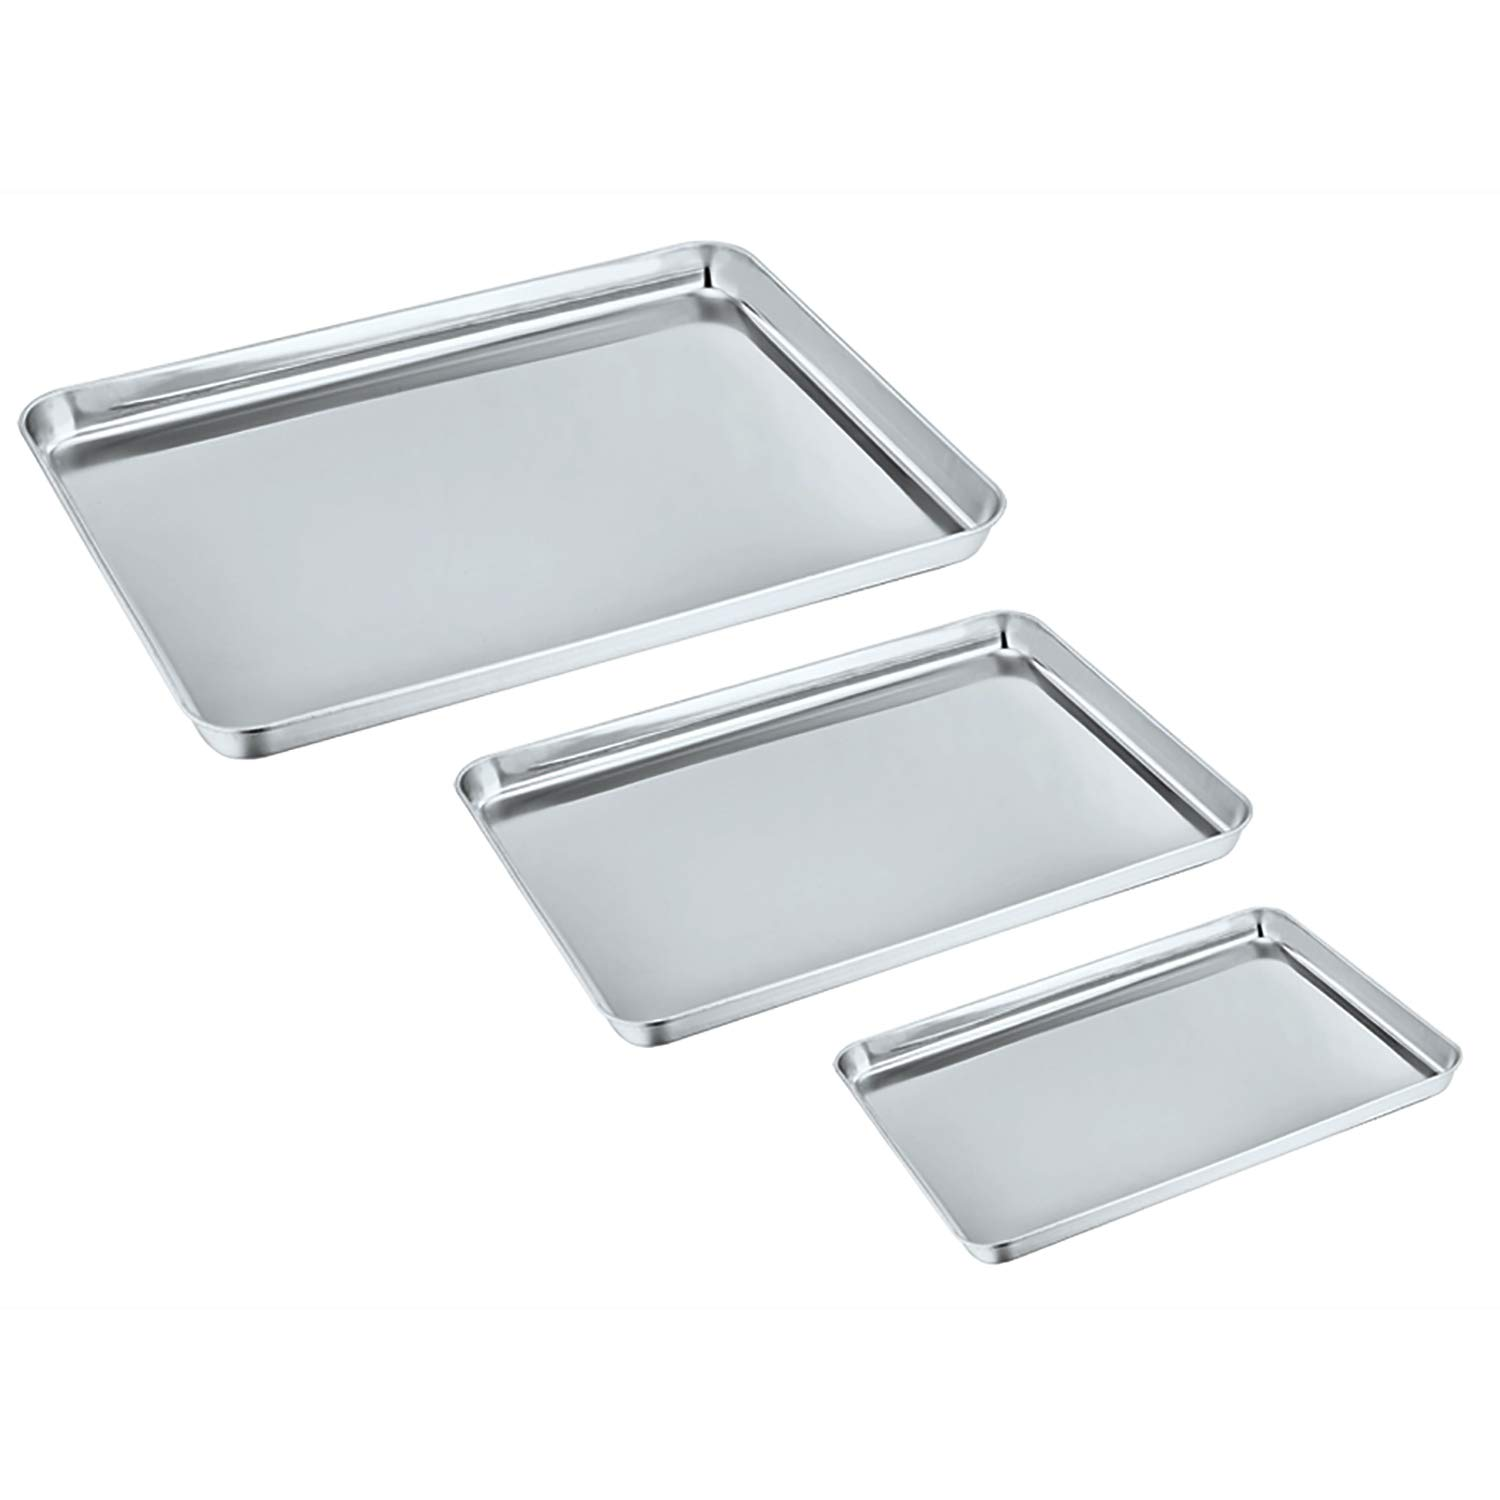 P&P CHEF Baking Sheet Set of 3, Stainless Steel Cookie Sheet Toaster Oven Pans, Healthy & Non Toxic, Mirror Finish & Rectangle, Easy Clean & Dishwasher Safe